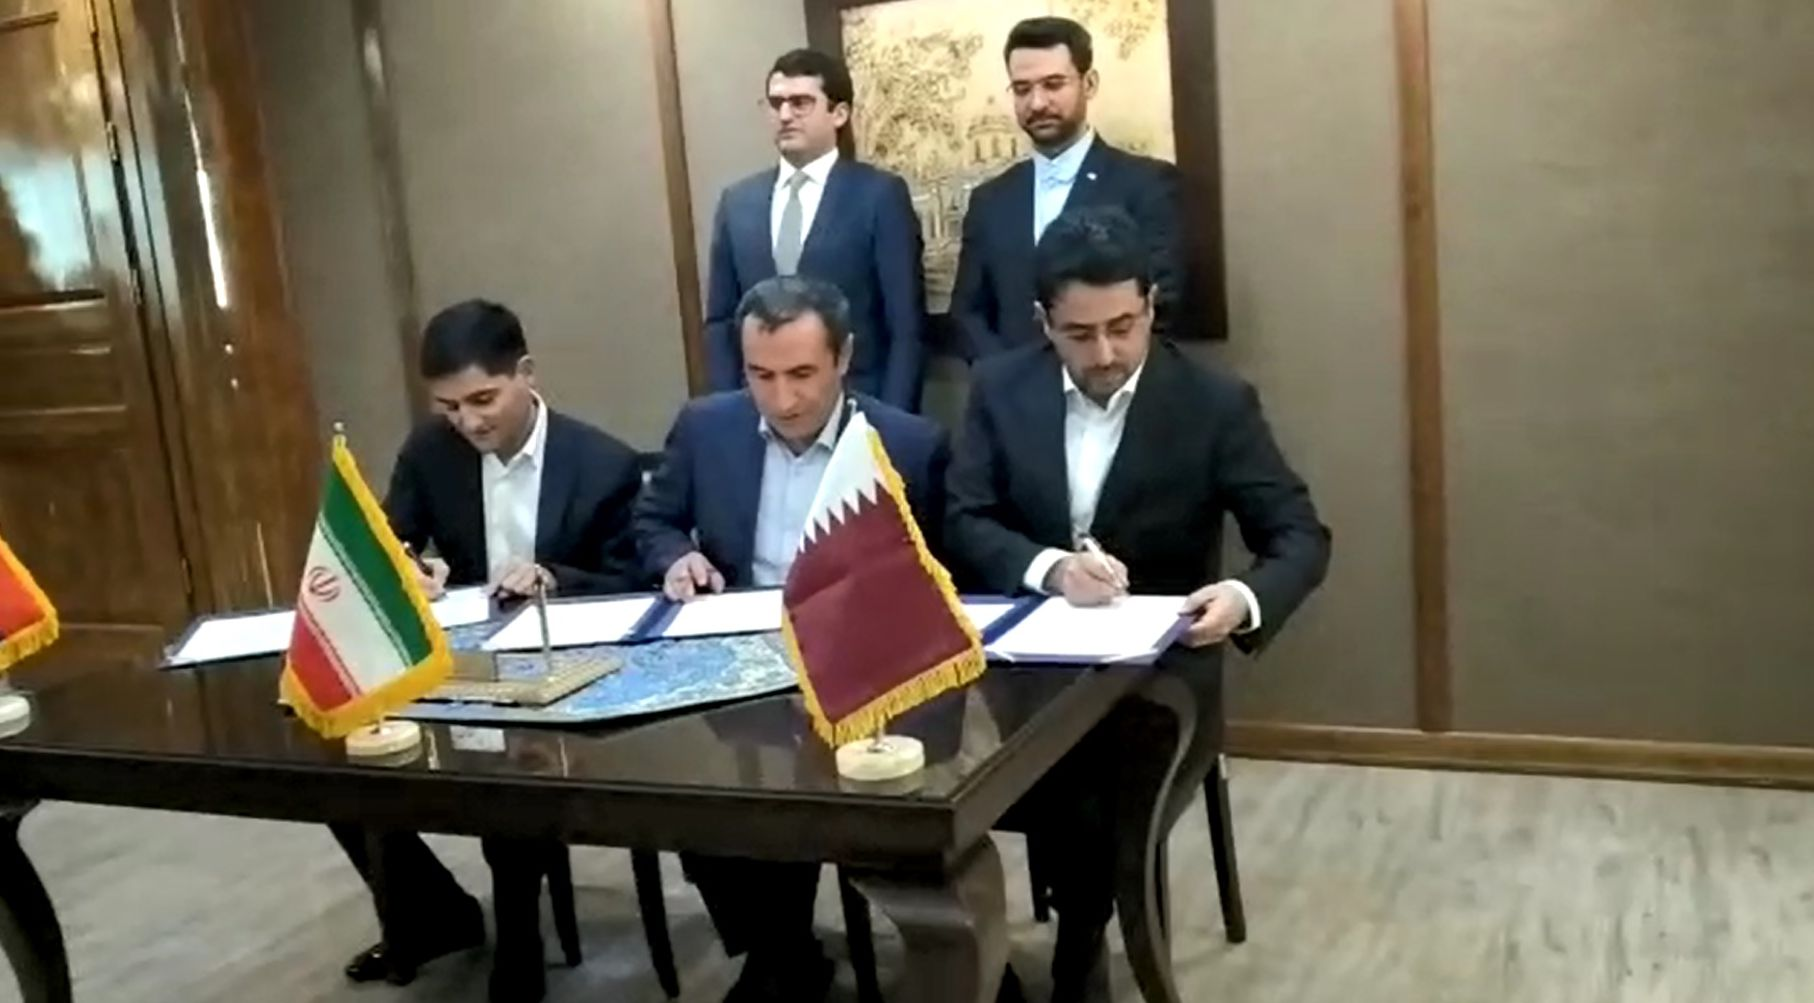 Connecting Europe-Armenia-Iran-Qatar: Armenian Company Exceeds Turkish Ones and Gets Involved in a Large Regional Project